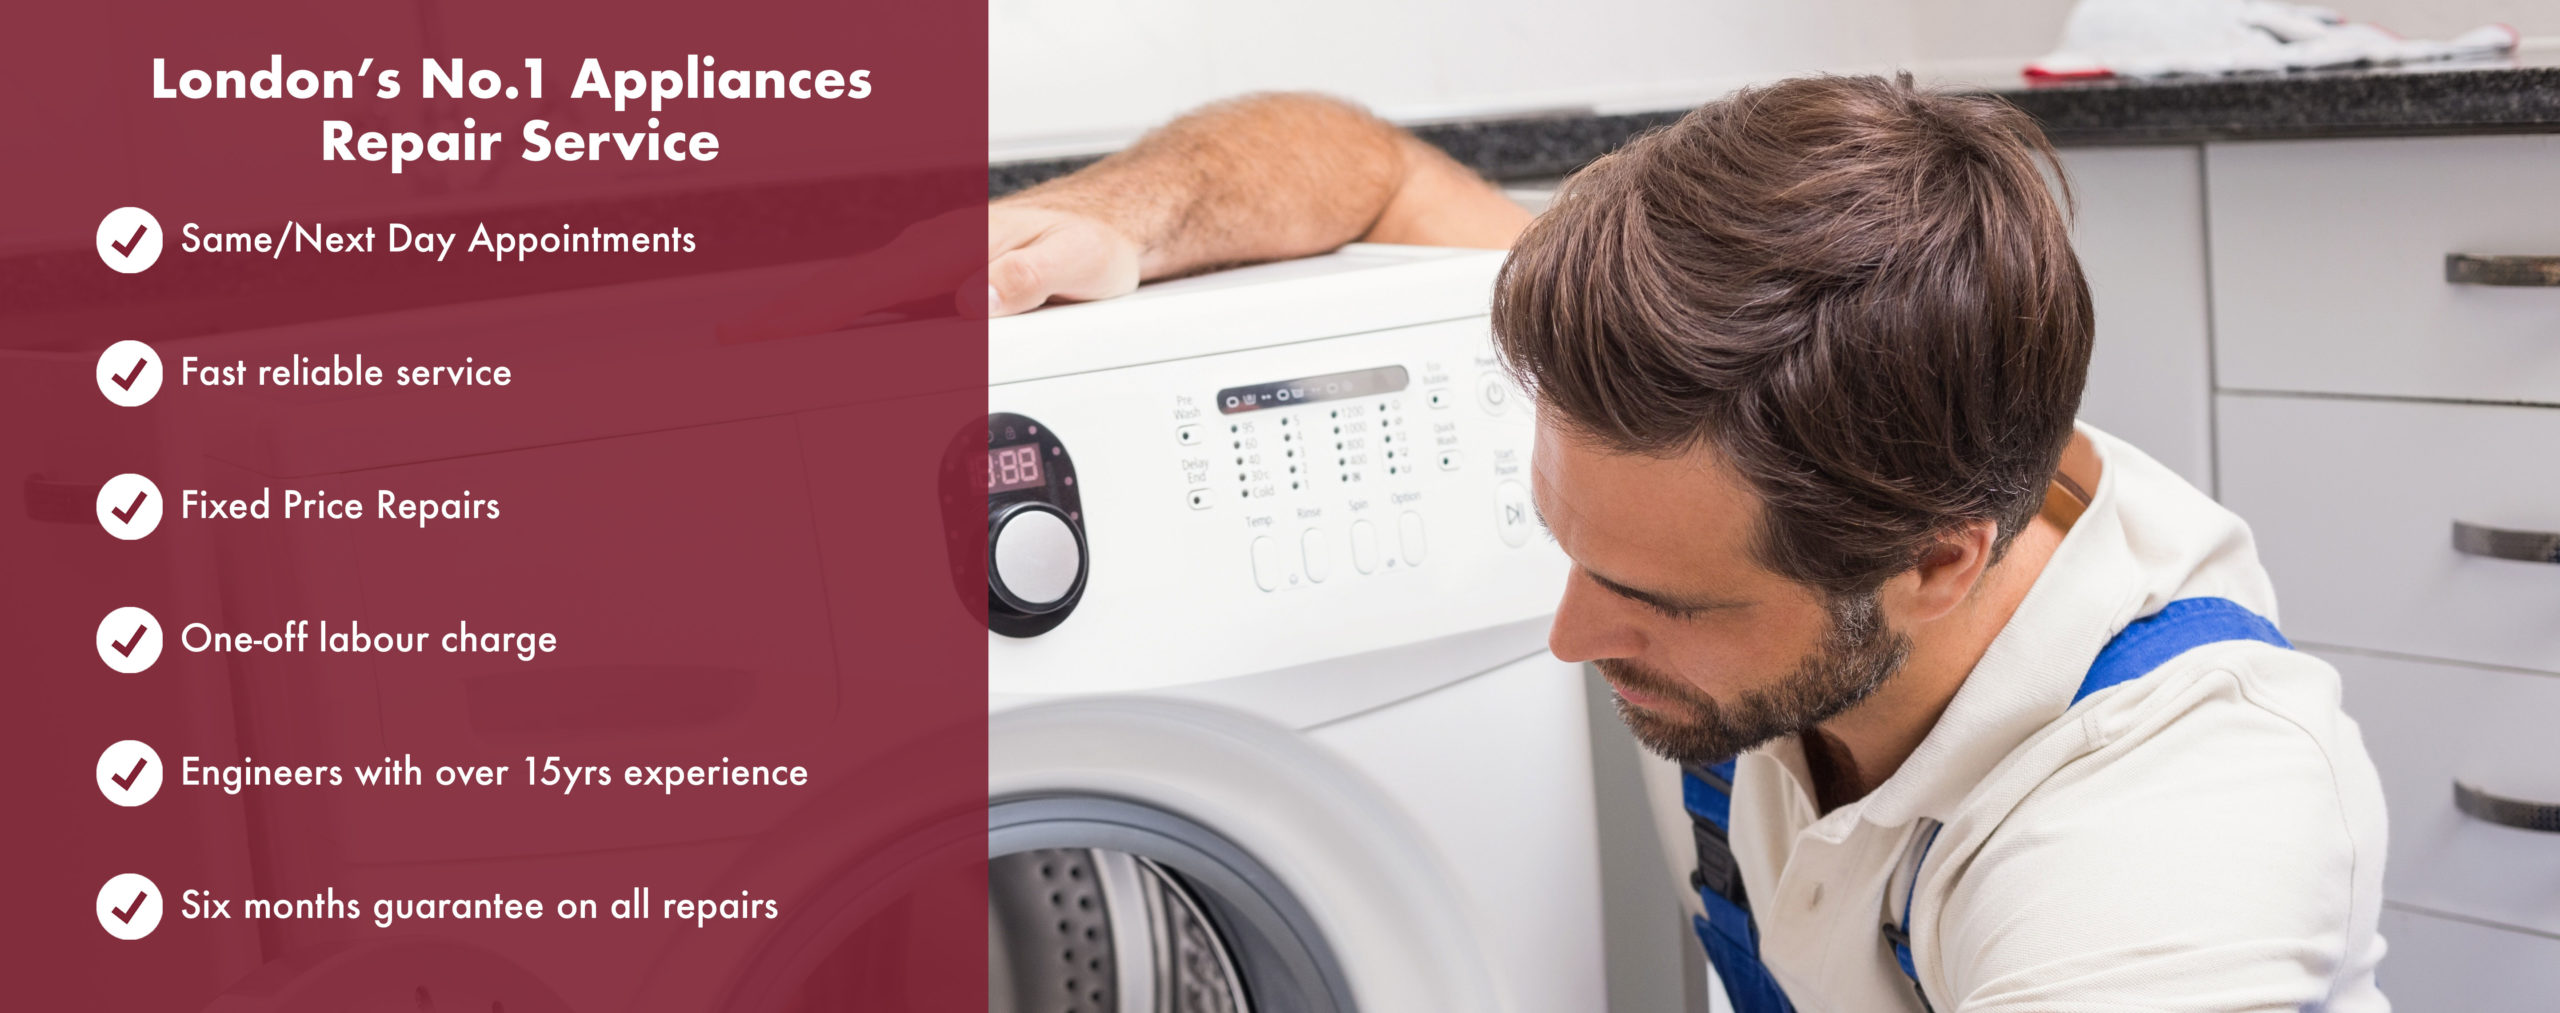 Appliances Repair London